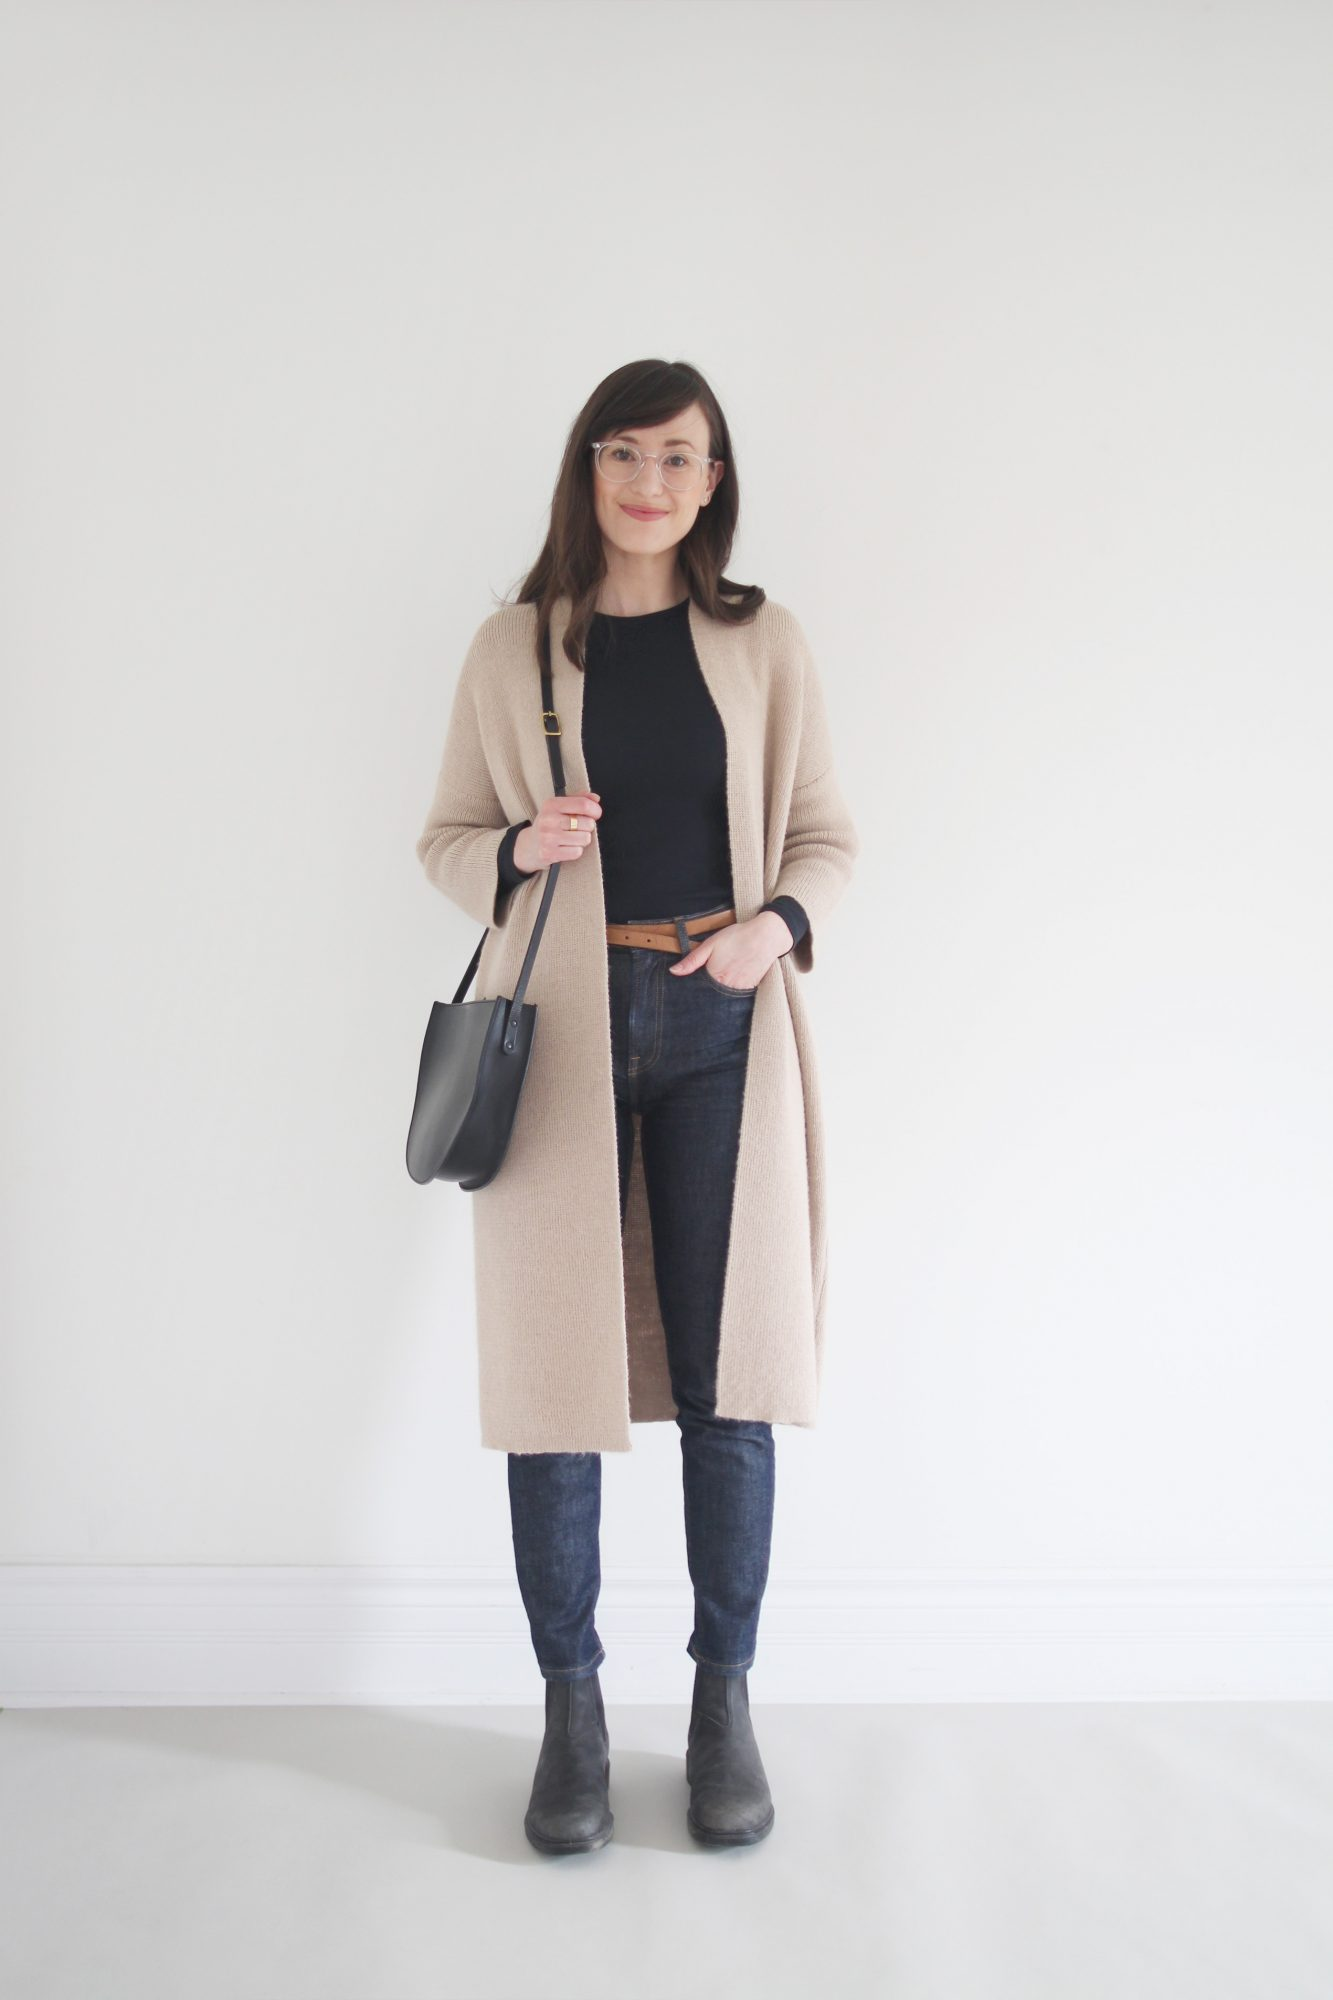 Style Bee - 3 Working From Home Looks